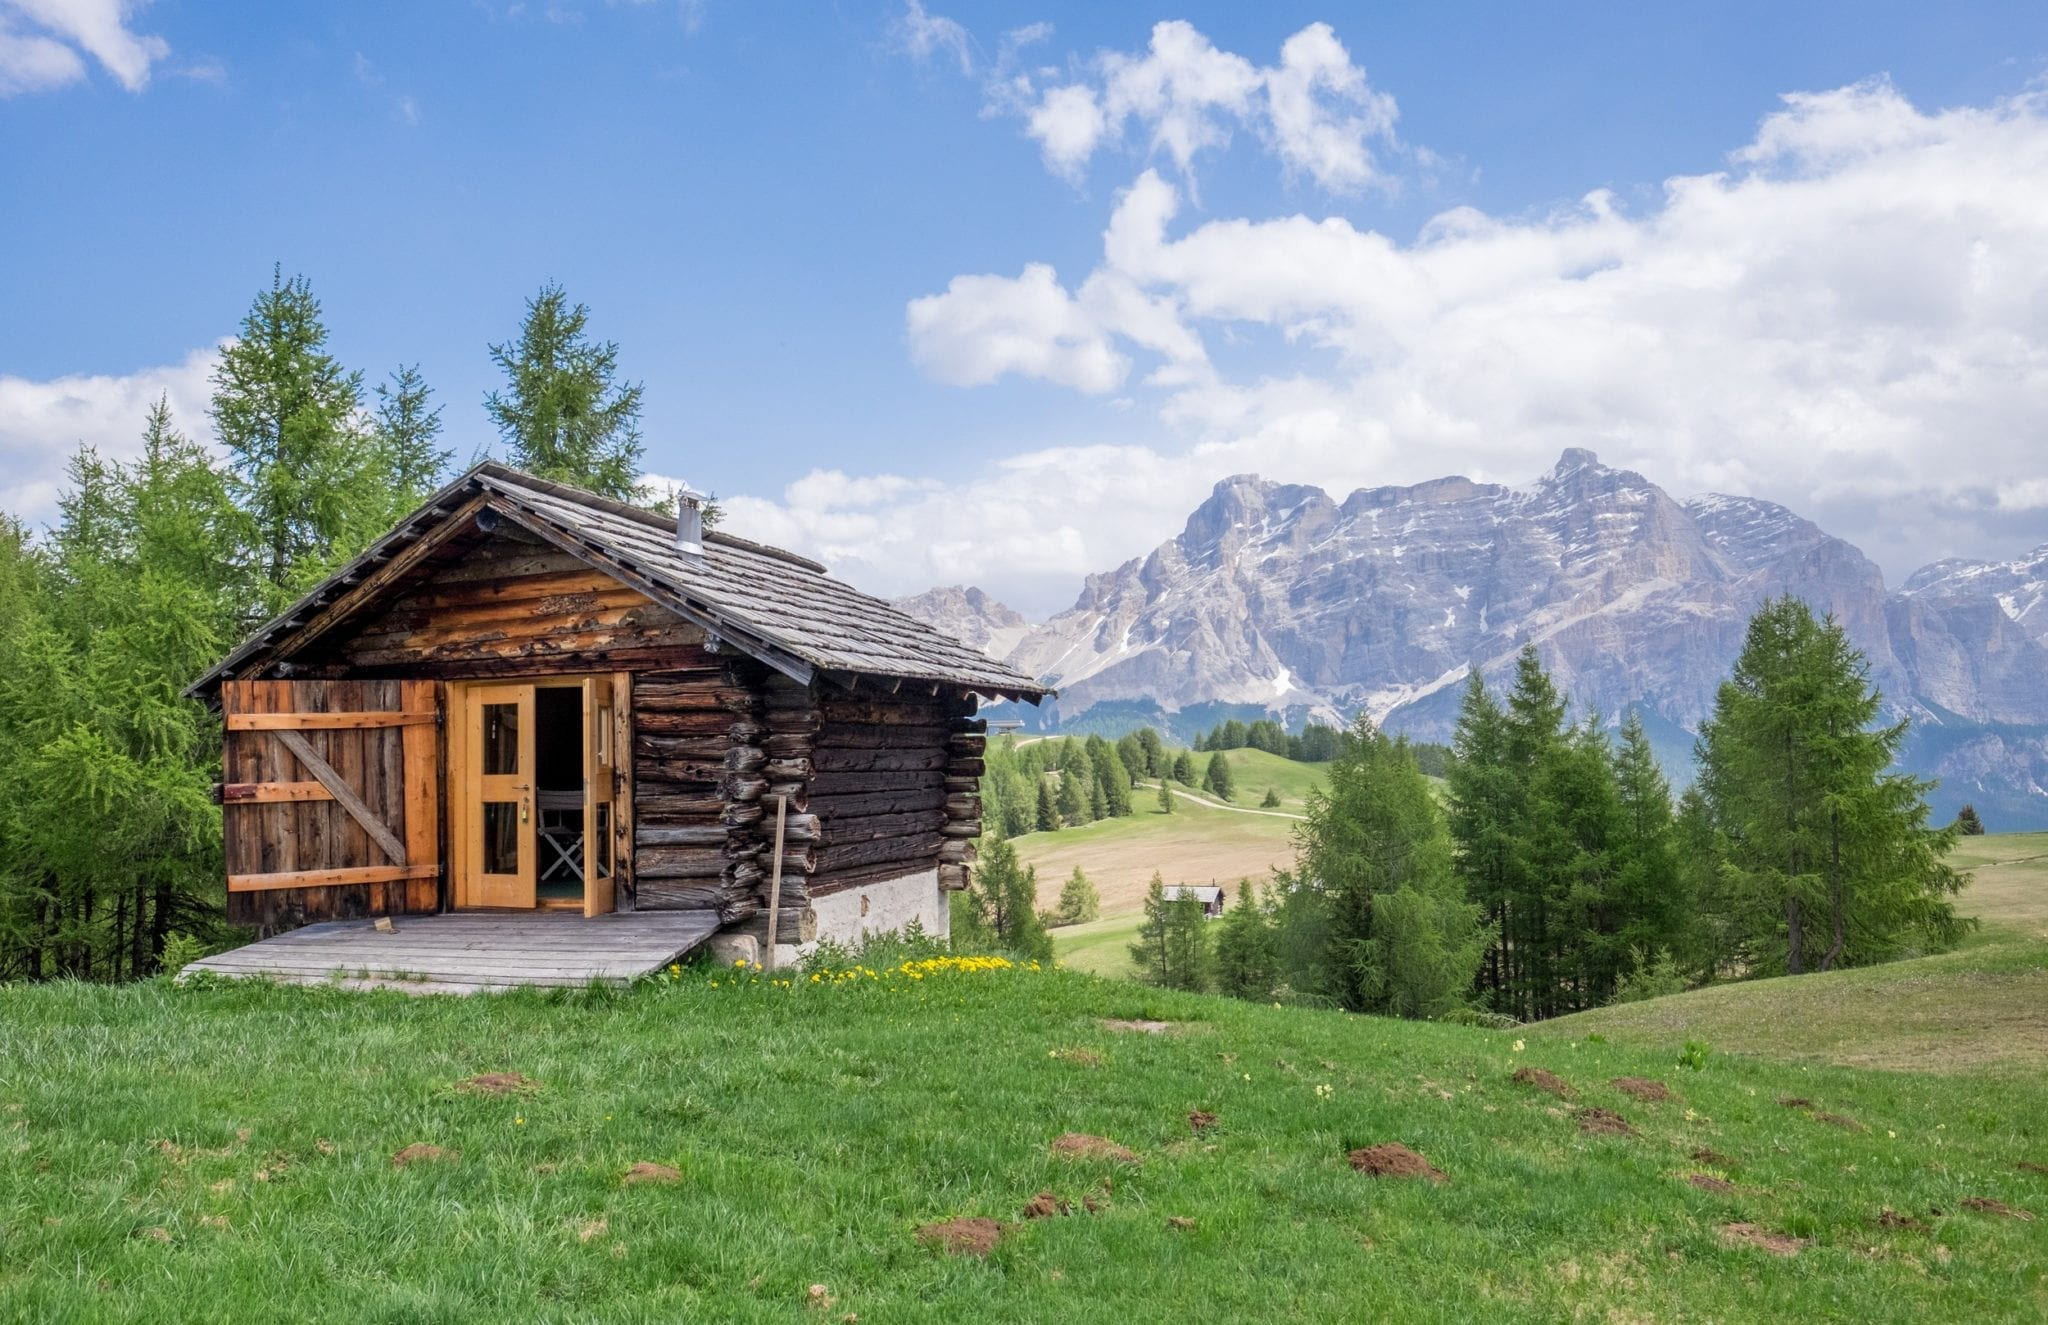 Scene from Alto Adige (South Tyrol), Italy: A wooden mountain hut, looking like a cabin, is on the left side of the screen, perched on grass; in the background, blue mountains rise up beneath a blue sky streaked with white clouds.